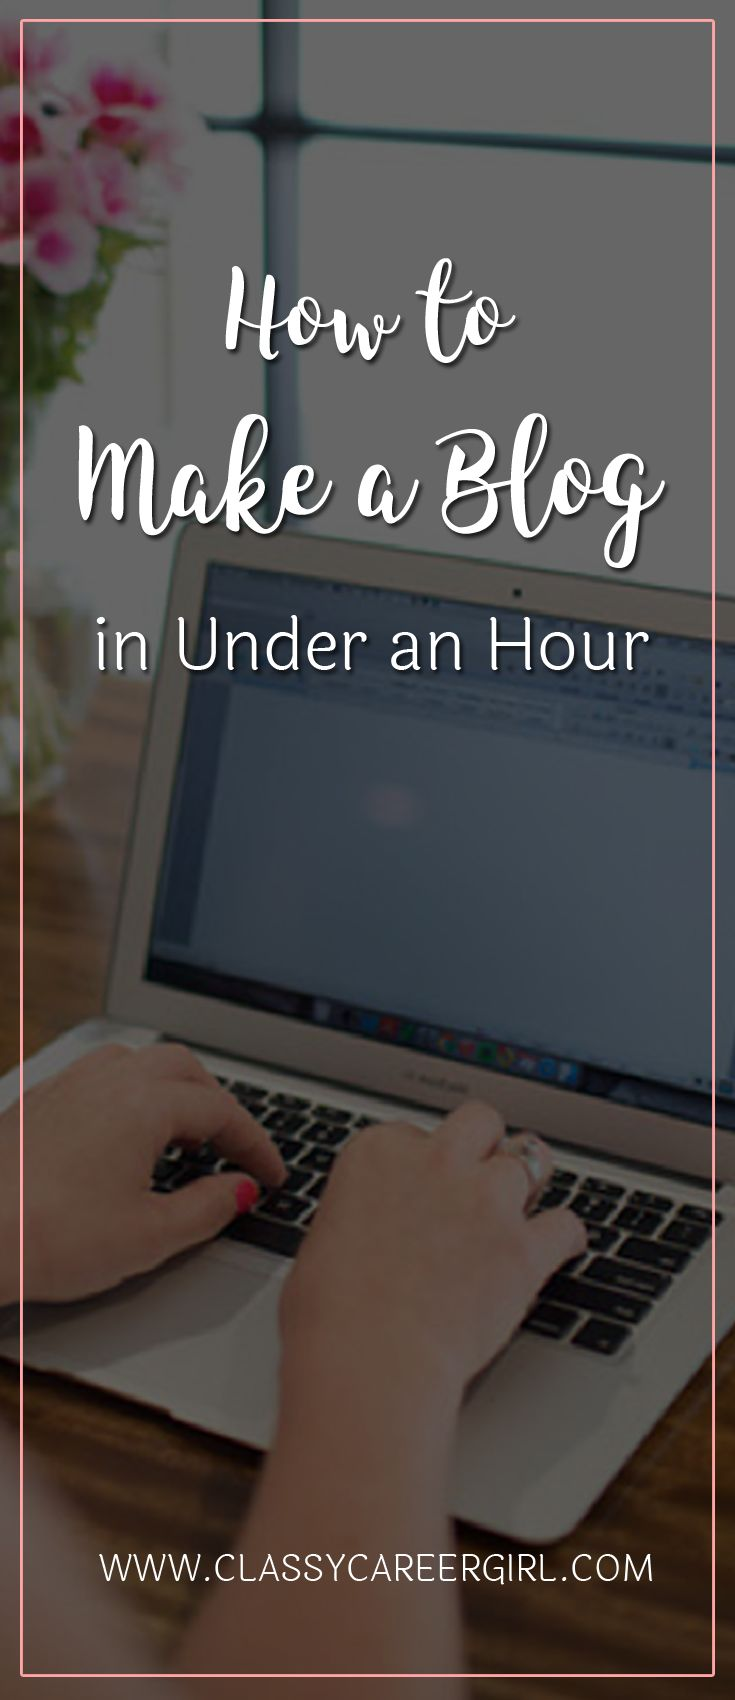 How to Make a Blog in Under an Hour  It's really not that hard to make a blog. Website stuff is where many people get stuck because they think creating a website is too overwhelming and time consuming. It's actually pretty simple. I taught myself a few years back and continue to design, create and modify websites myself too!   Read More: http://www.classycareergirl.com/2016/01/make-a-blog/